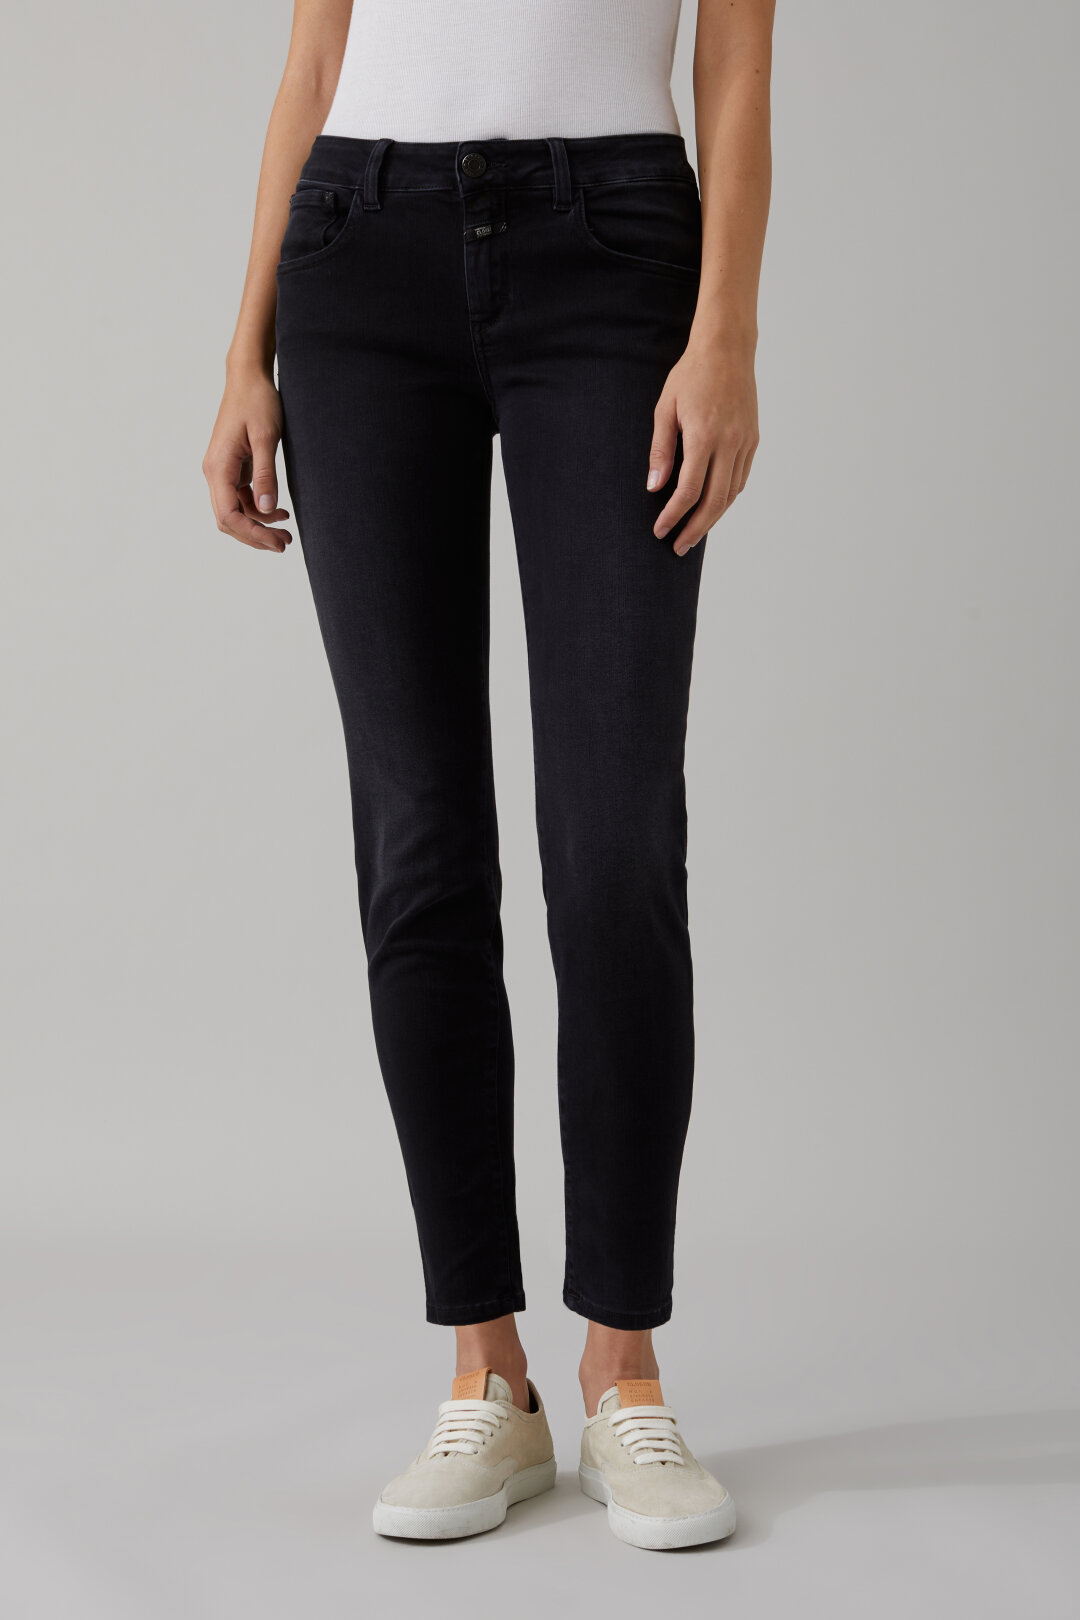 Baker Black Power Stretch Denim